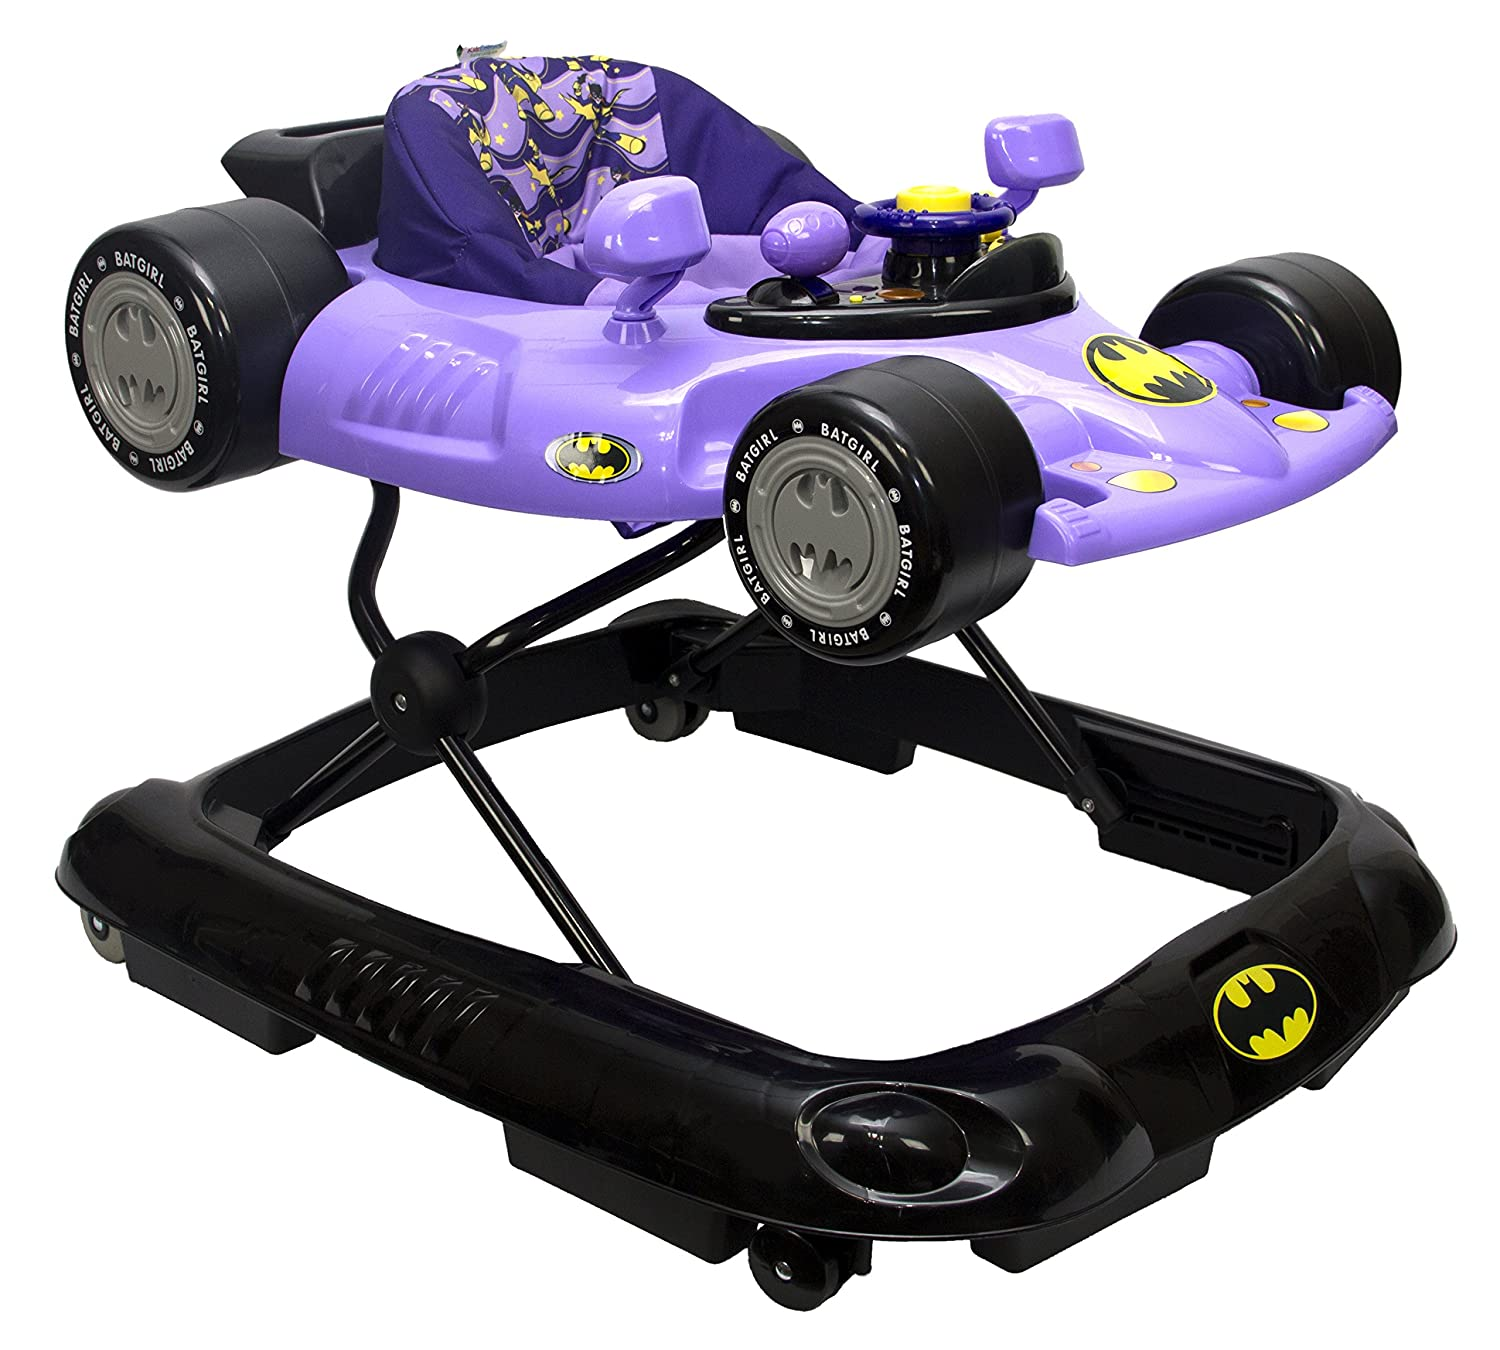 KidsEmbrace Batgirl Baby Activity Walker, DC Comics Car, Music and Lights, Purple 5501BTG